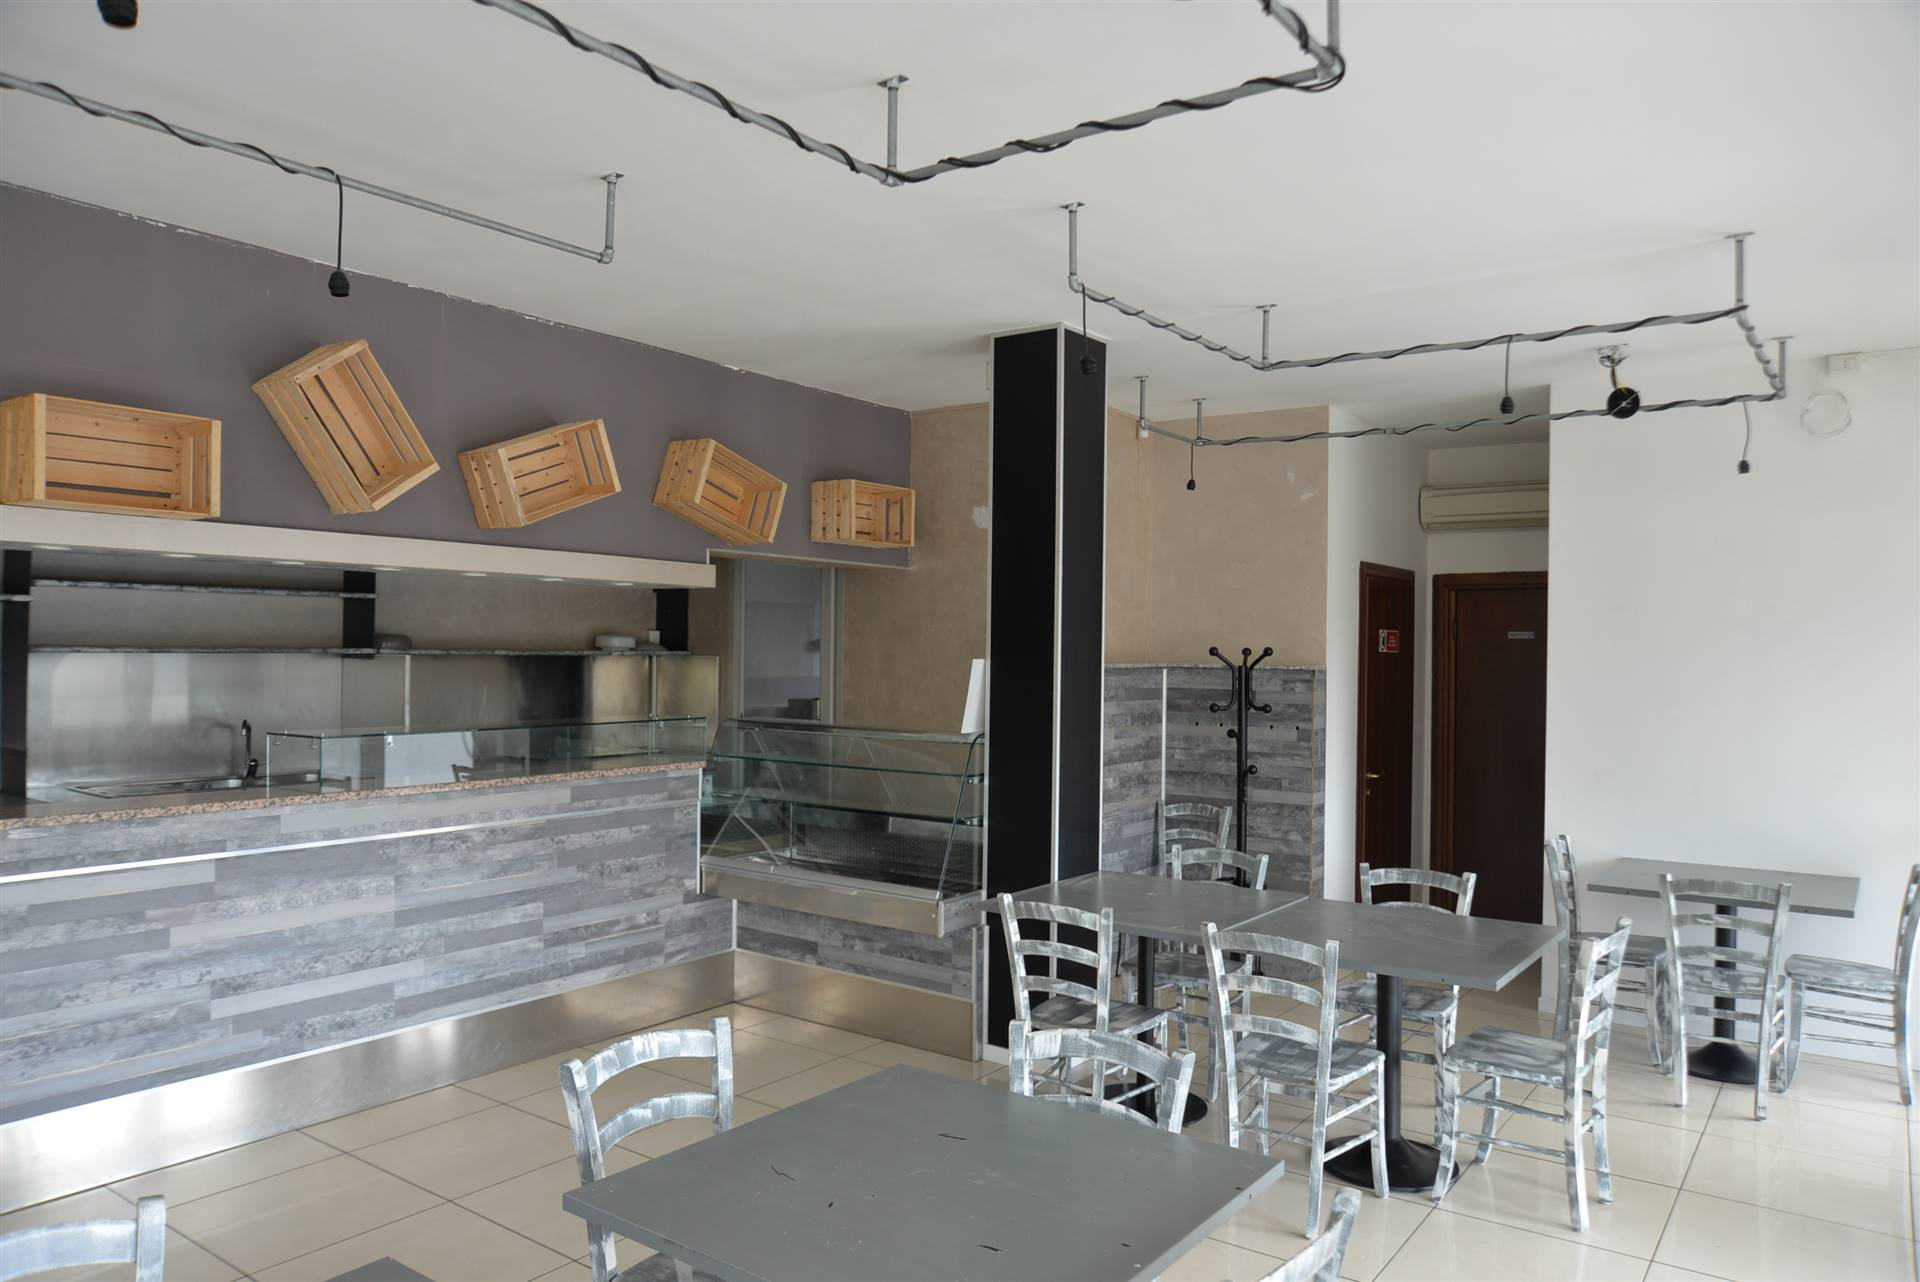 MELLAREDO, PIANIGA, Shop for rent of 80 Sq. mt., Good condition, Heating Individual heating system, placed at Ground on 3, composed by: 2 Rooms, 2